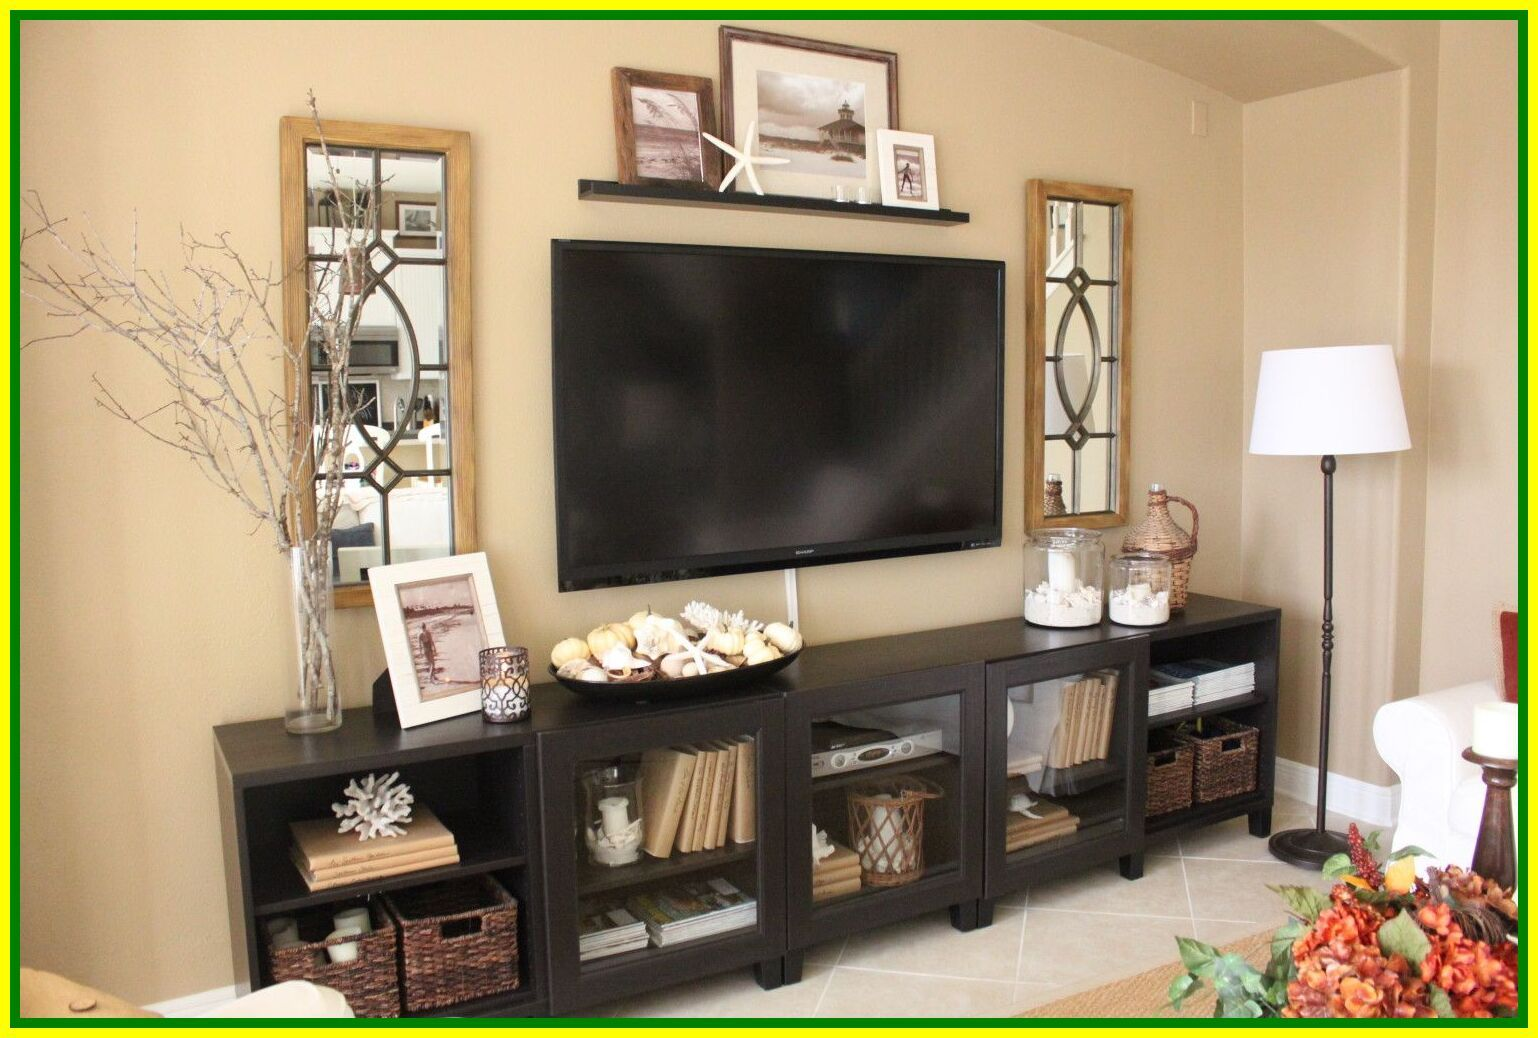 127 Reference Of Tv Stand Living Room Design Living Room Tv Stand Living Room Without Tv Home Decor